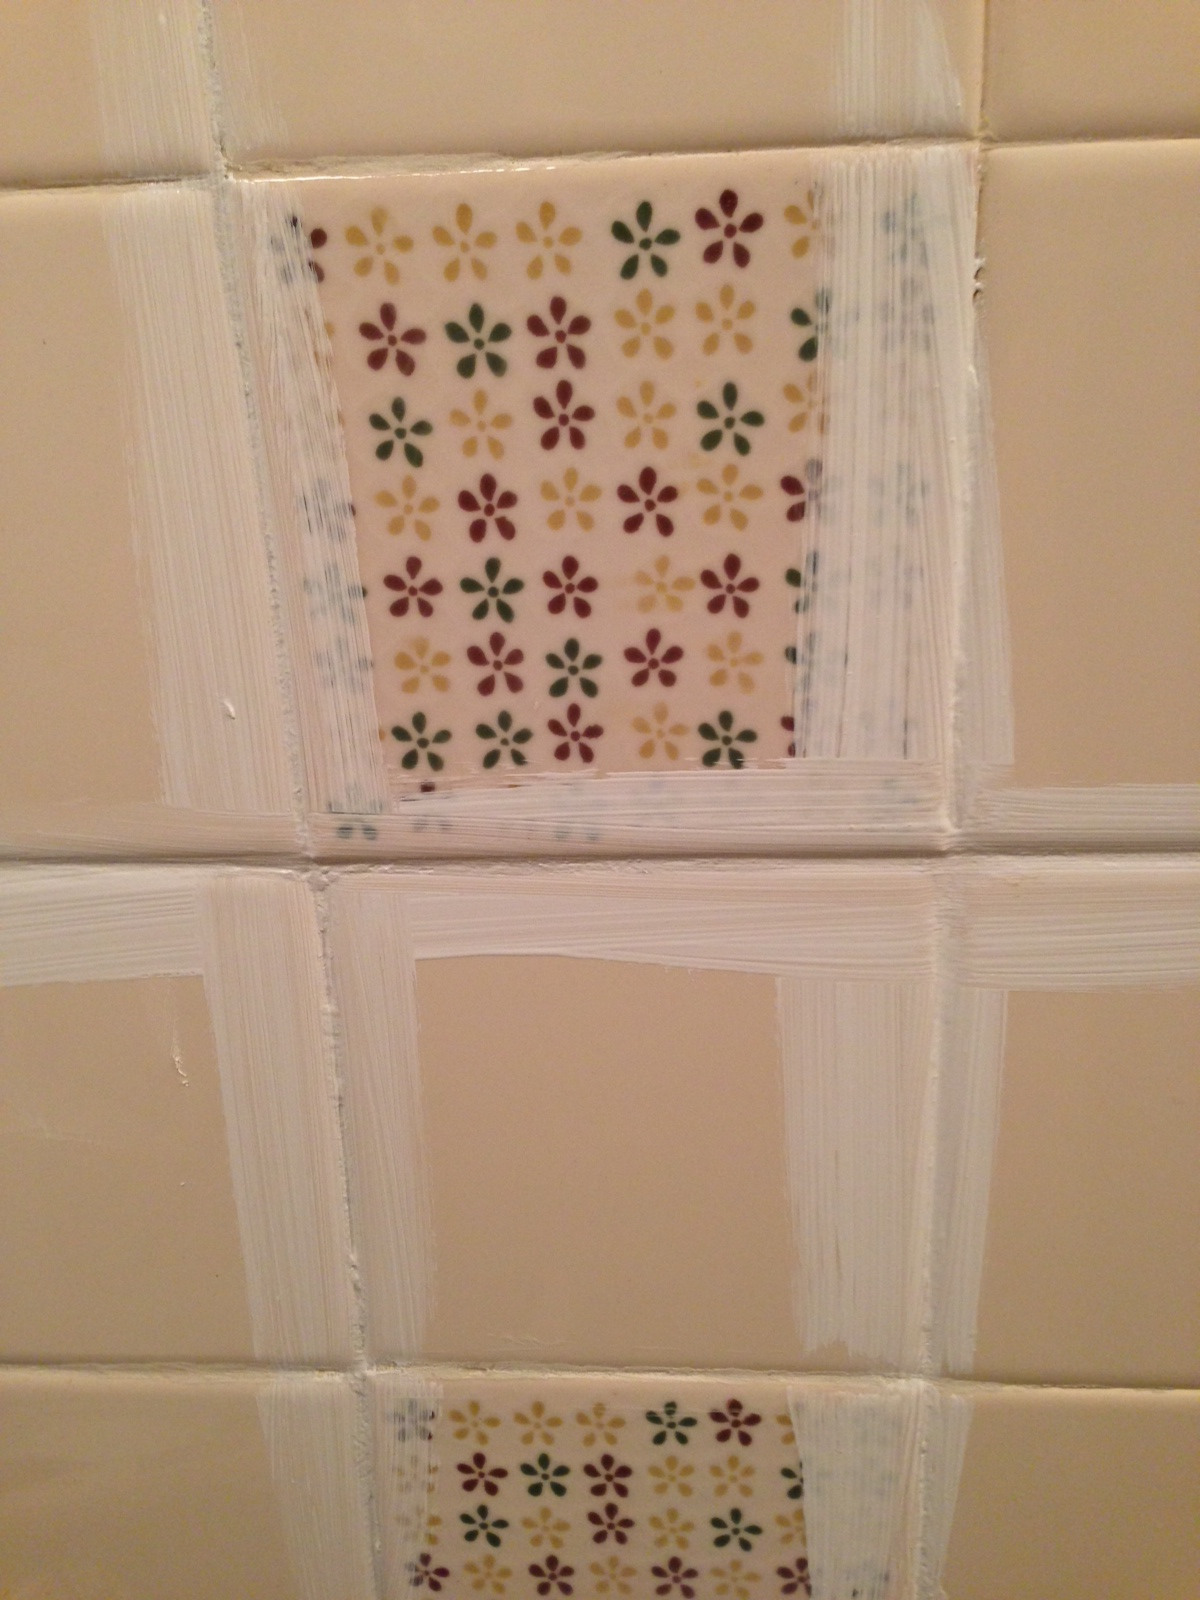 Diy bathroom tile - How To Paint Tile By The Learner Observer On Remodelaholic Com